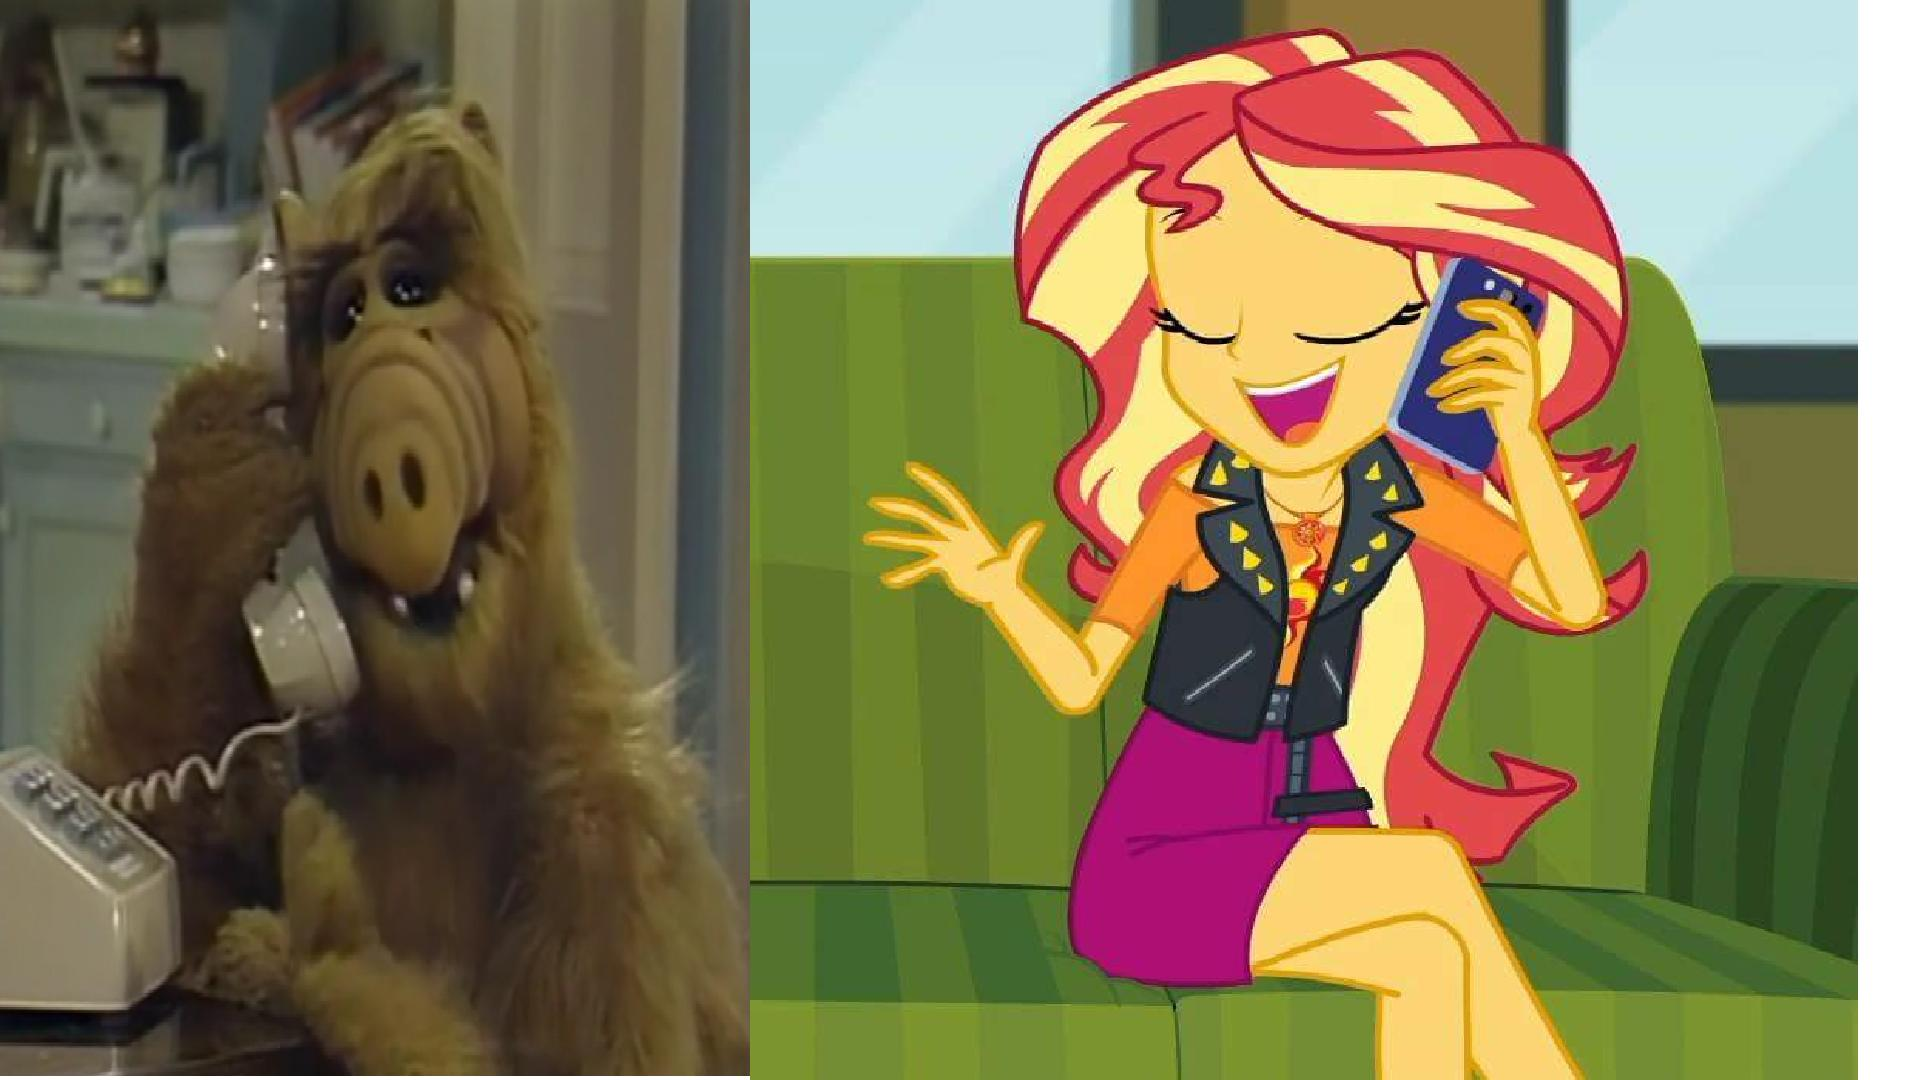 Alf Images Alf Phones To Sunset Shimmerjpg Hd Wallpaper And